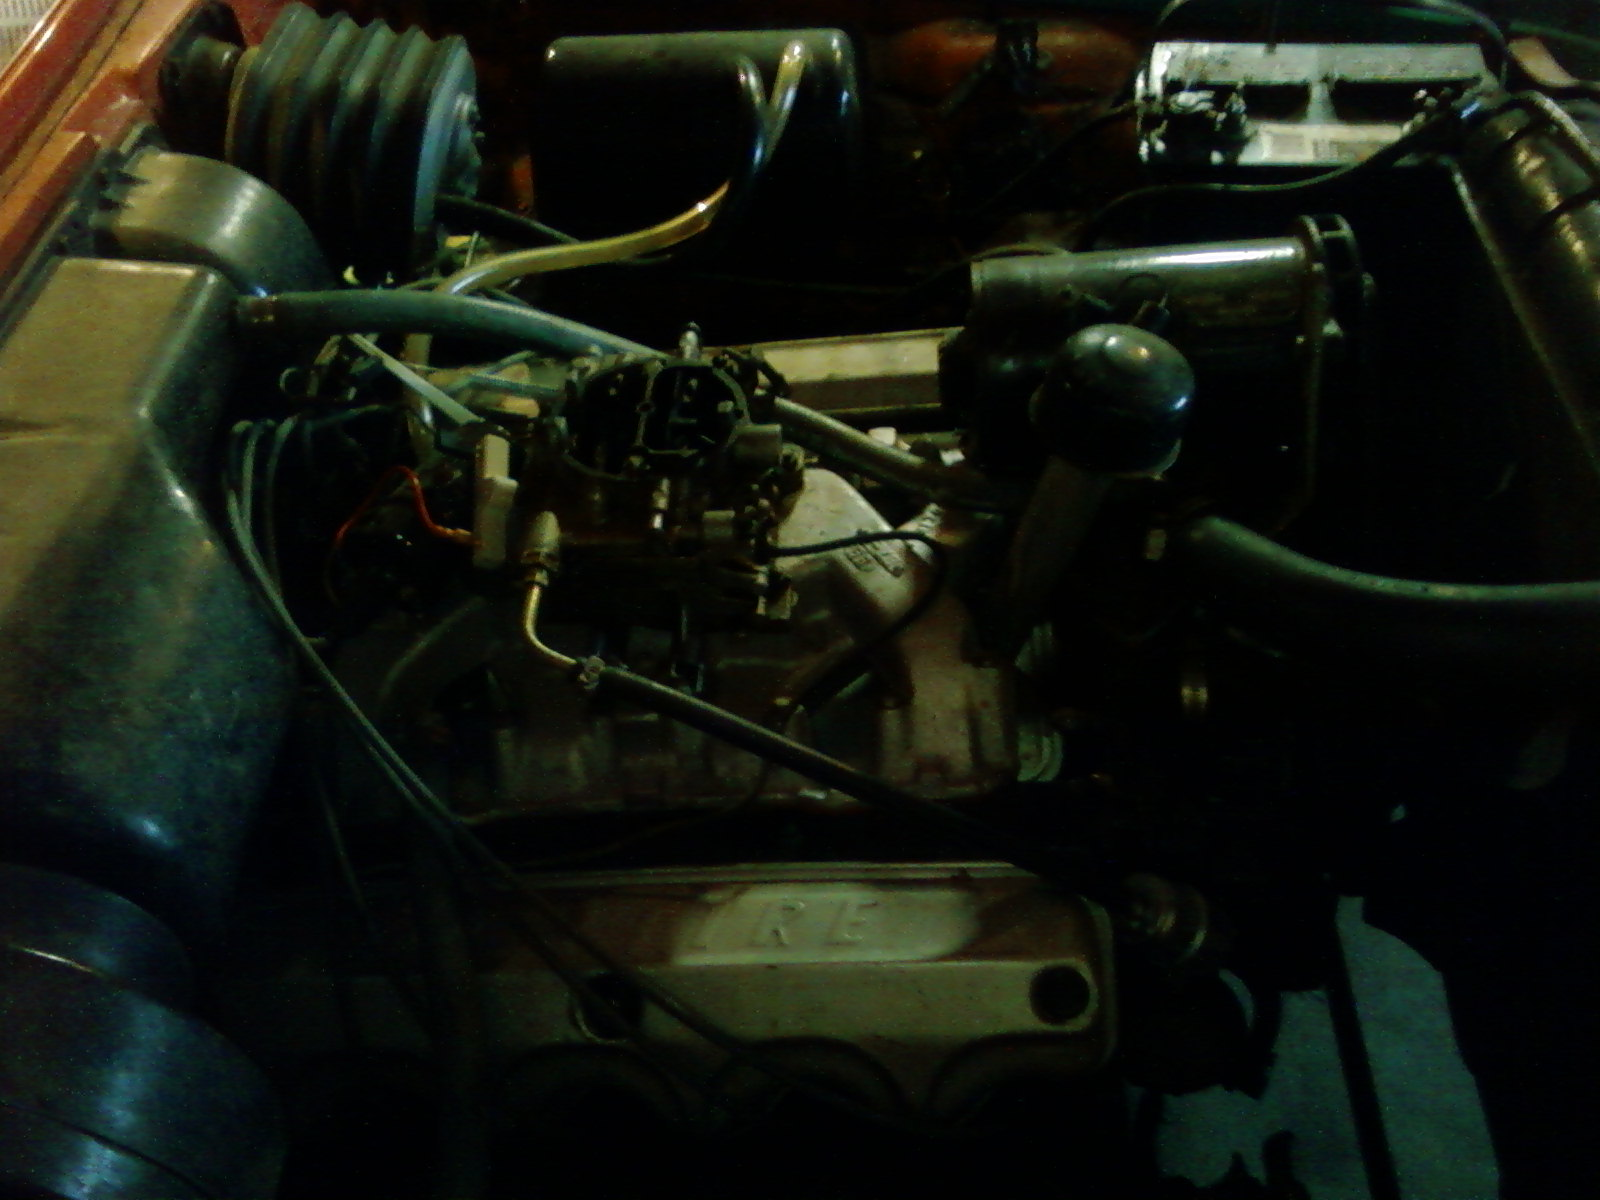 Printer Friendly Copy Of Thread Wiring Diagrams 1962 Plymouth V8 Savoy Belvedere And Fury 030309 162900